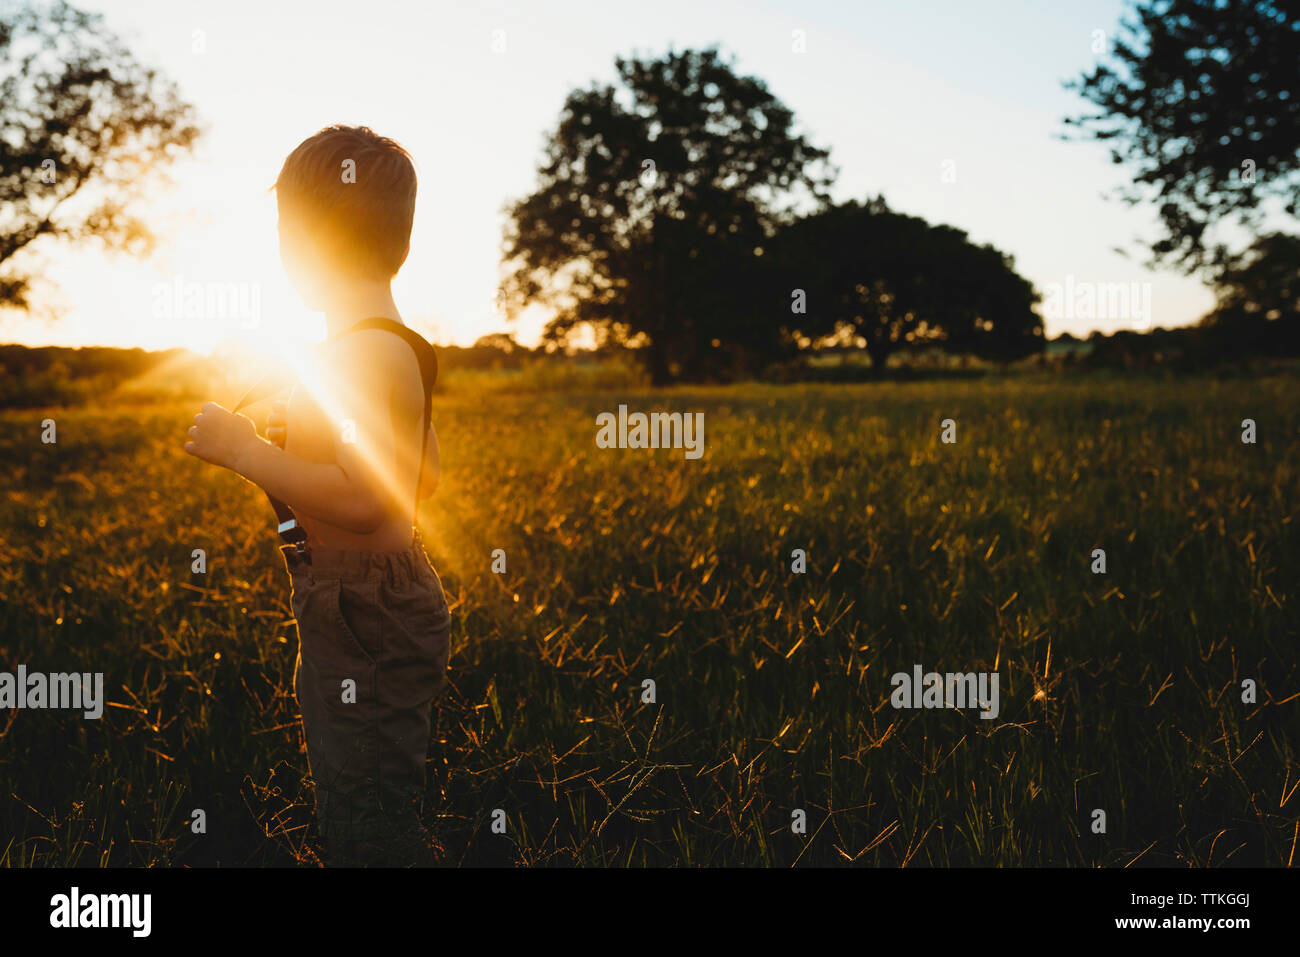 Side view of shirtless boy holding suspenders while standing on field during sunset - Stock Image